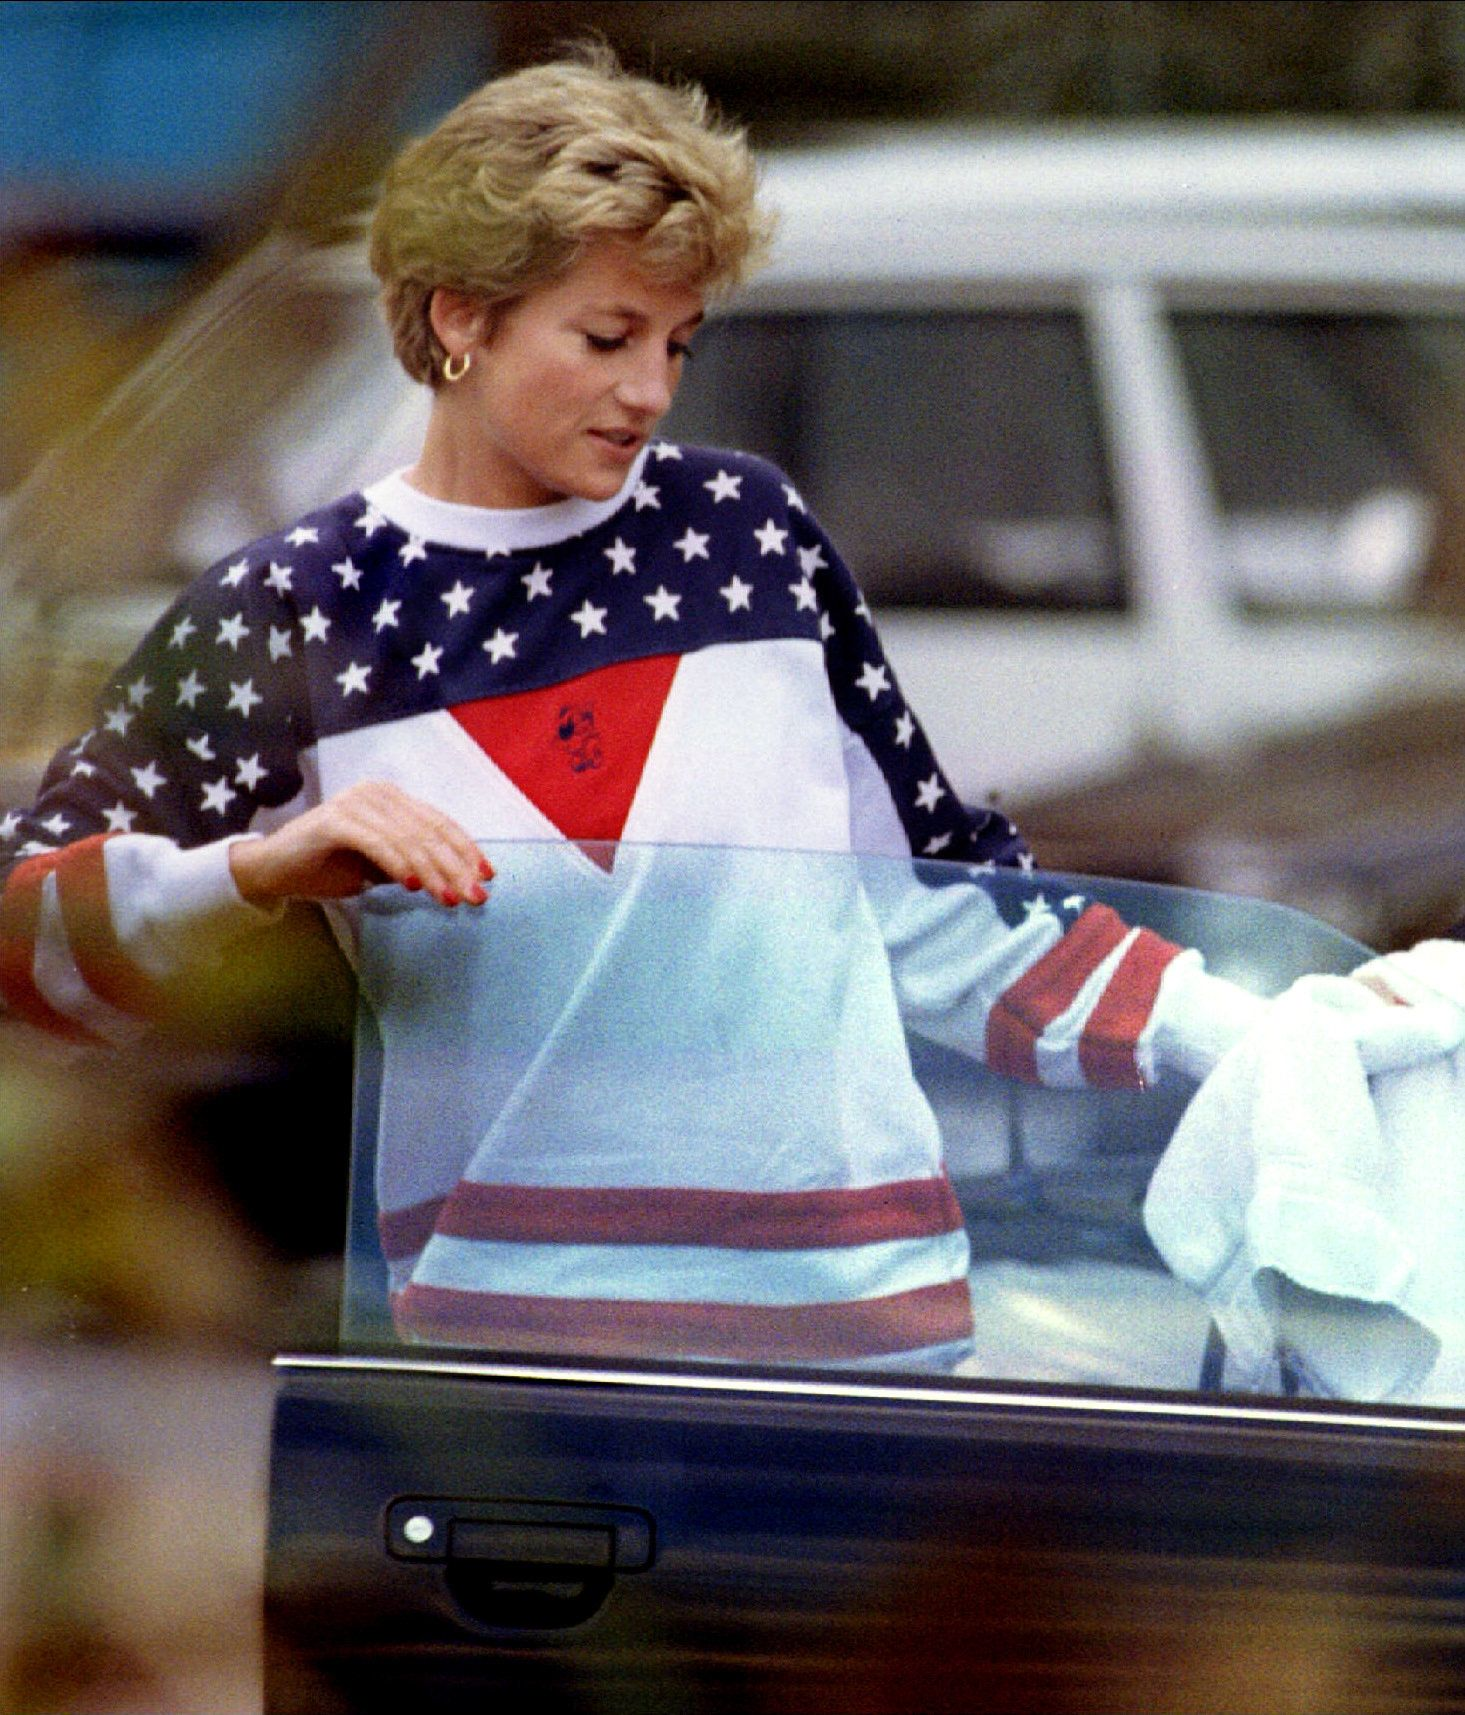 Girlfriend Princess Diana shared online it's a rare frame and memories